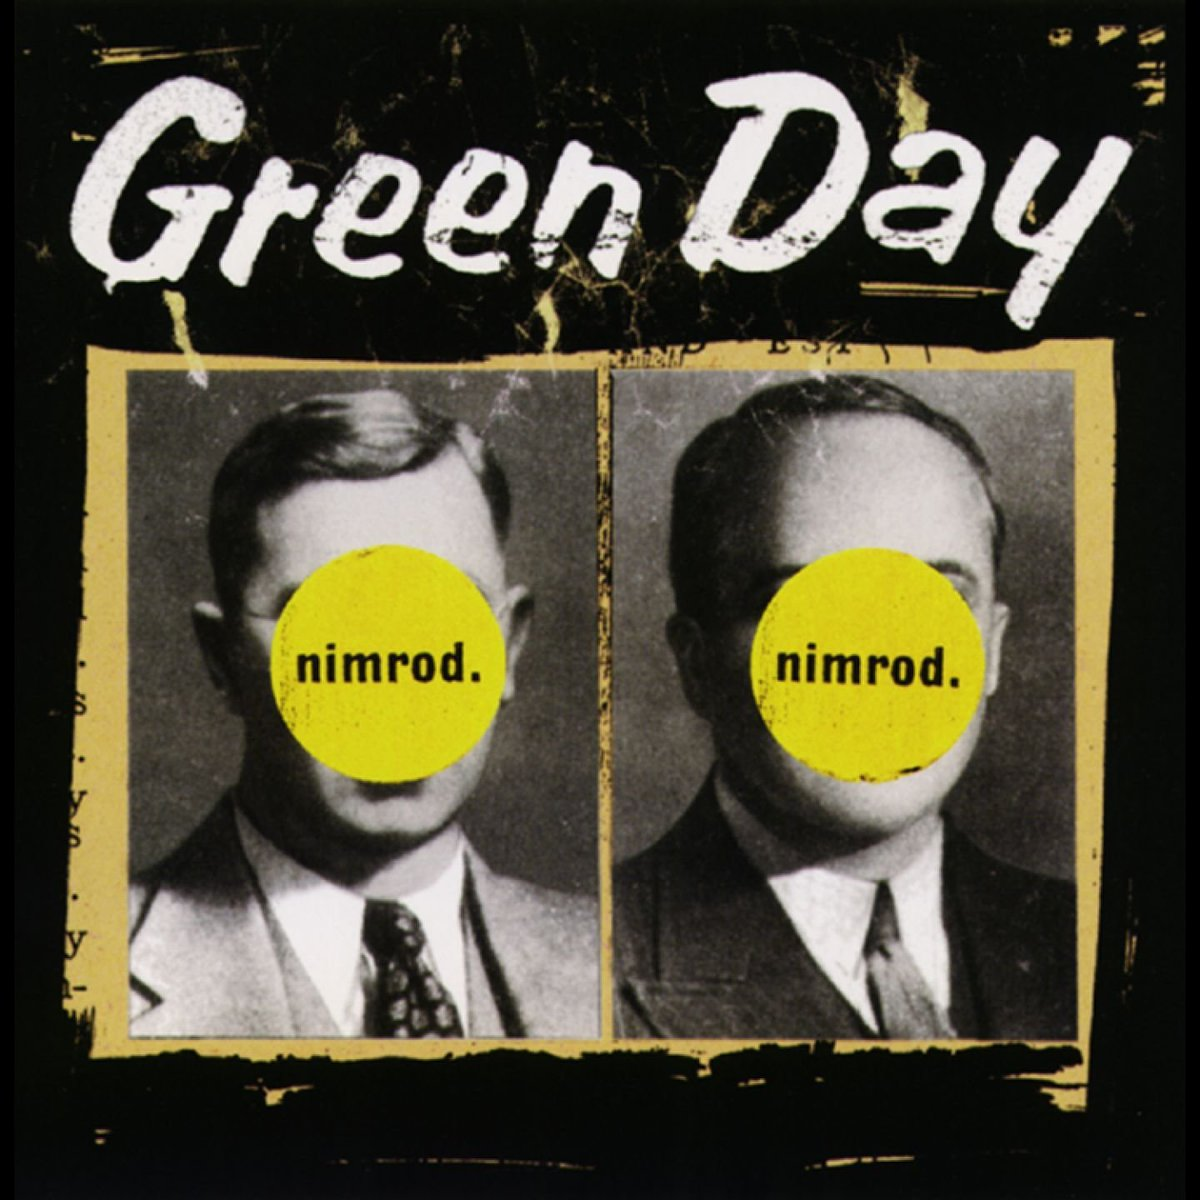 #Kingforaday is trending and now all we can think about is @GreenDay 🤘...